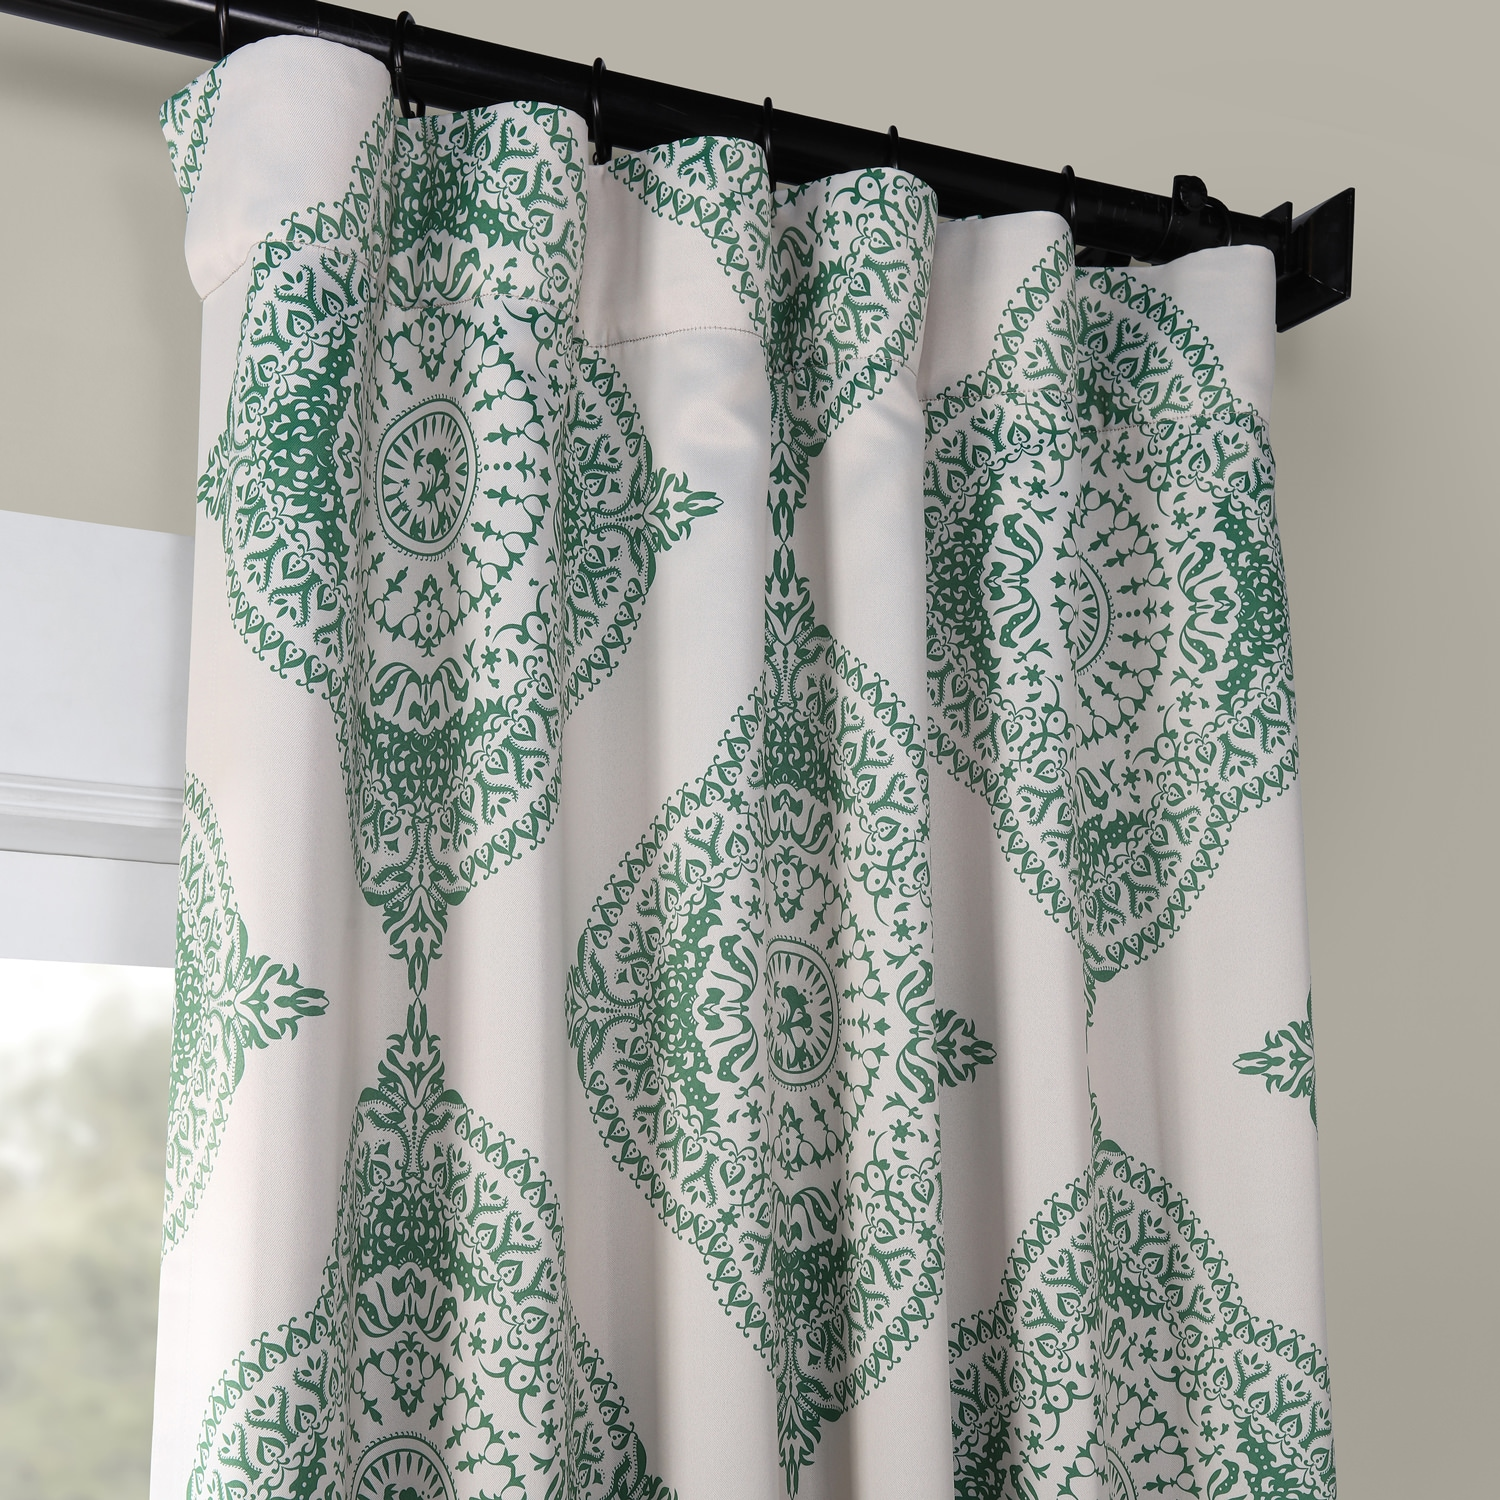 Henna Clover Room Darkening Curtain